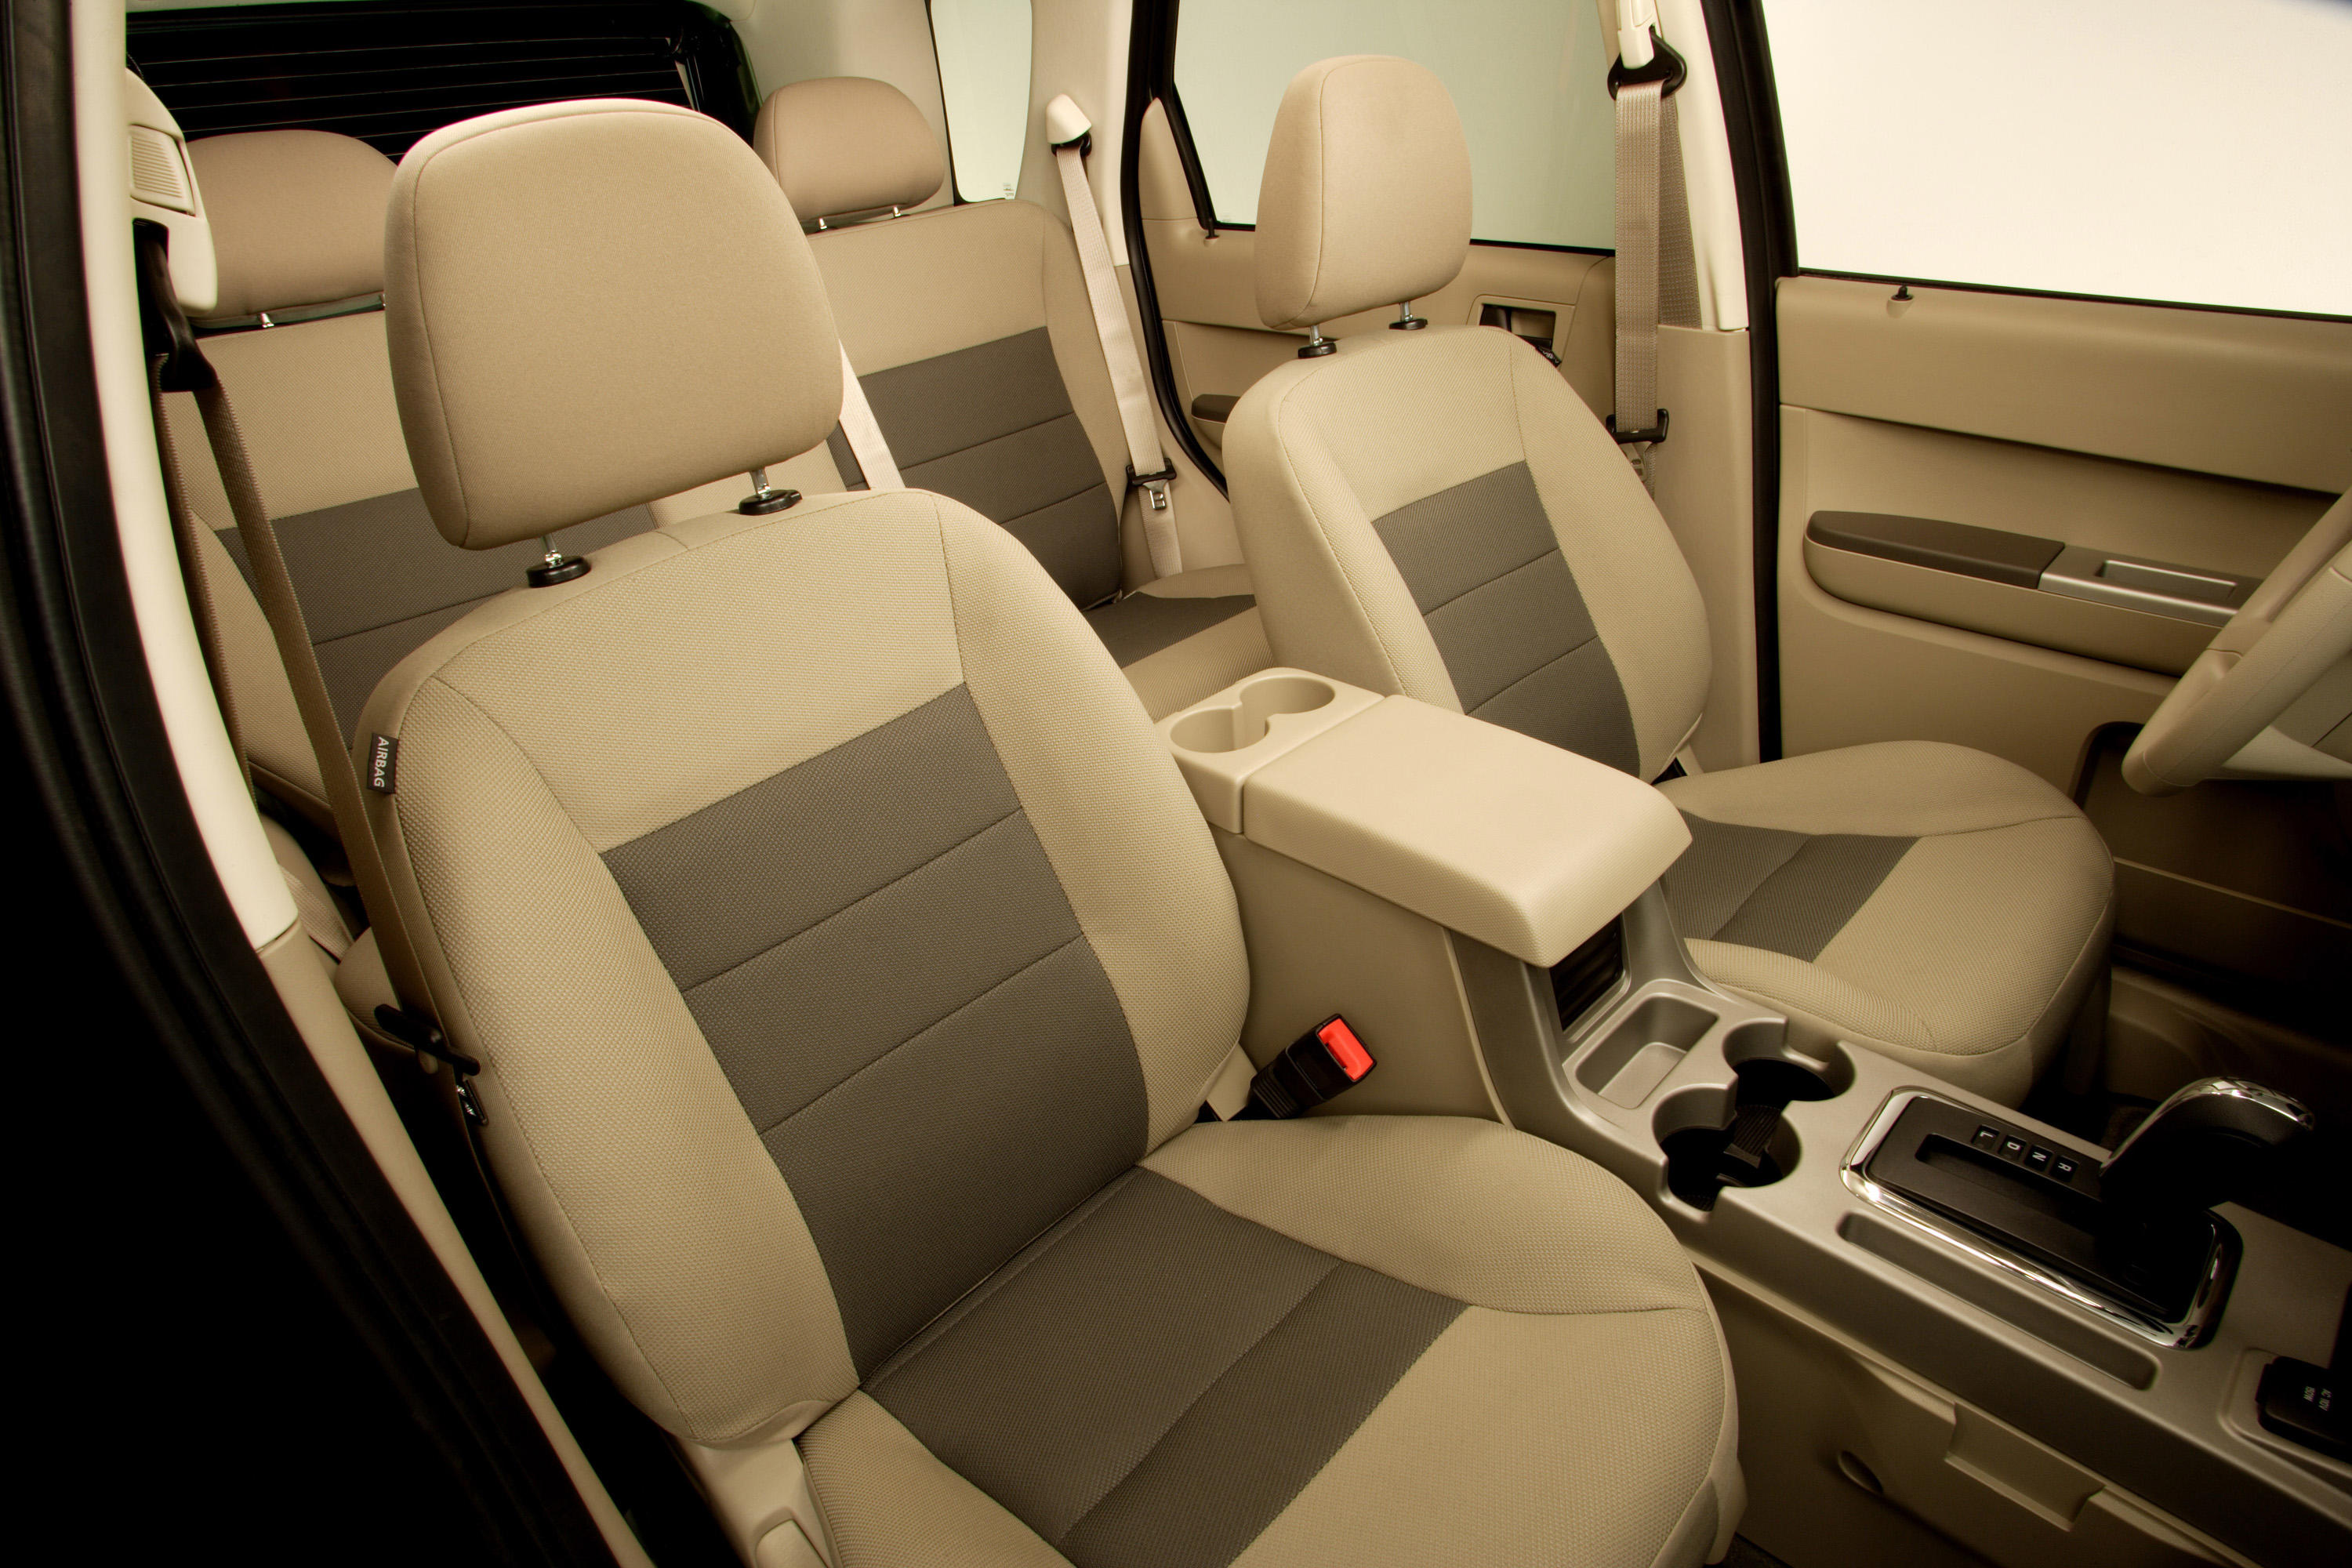 2008-ford-escape-interior-2